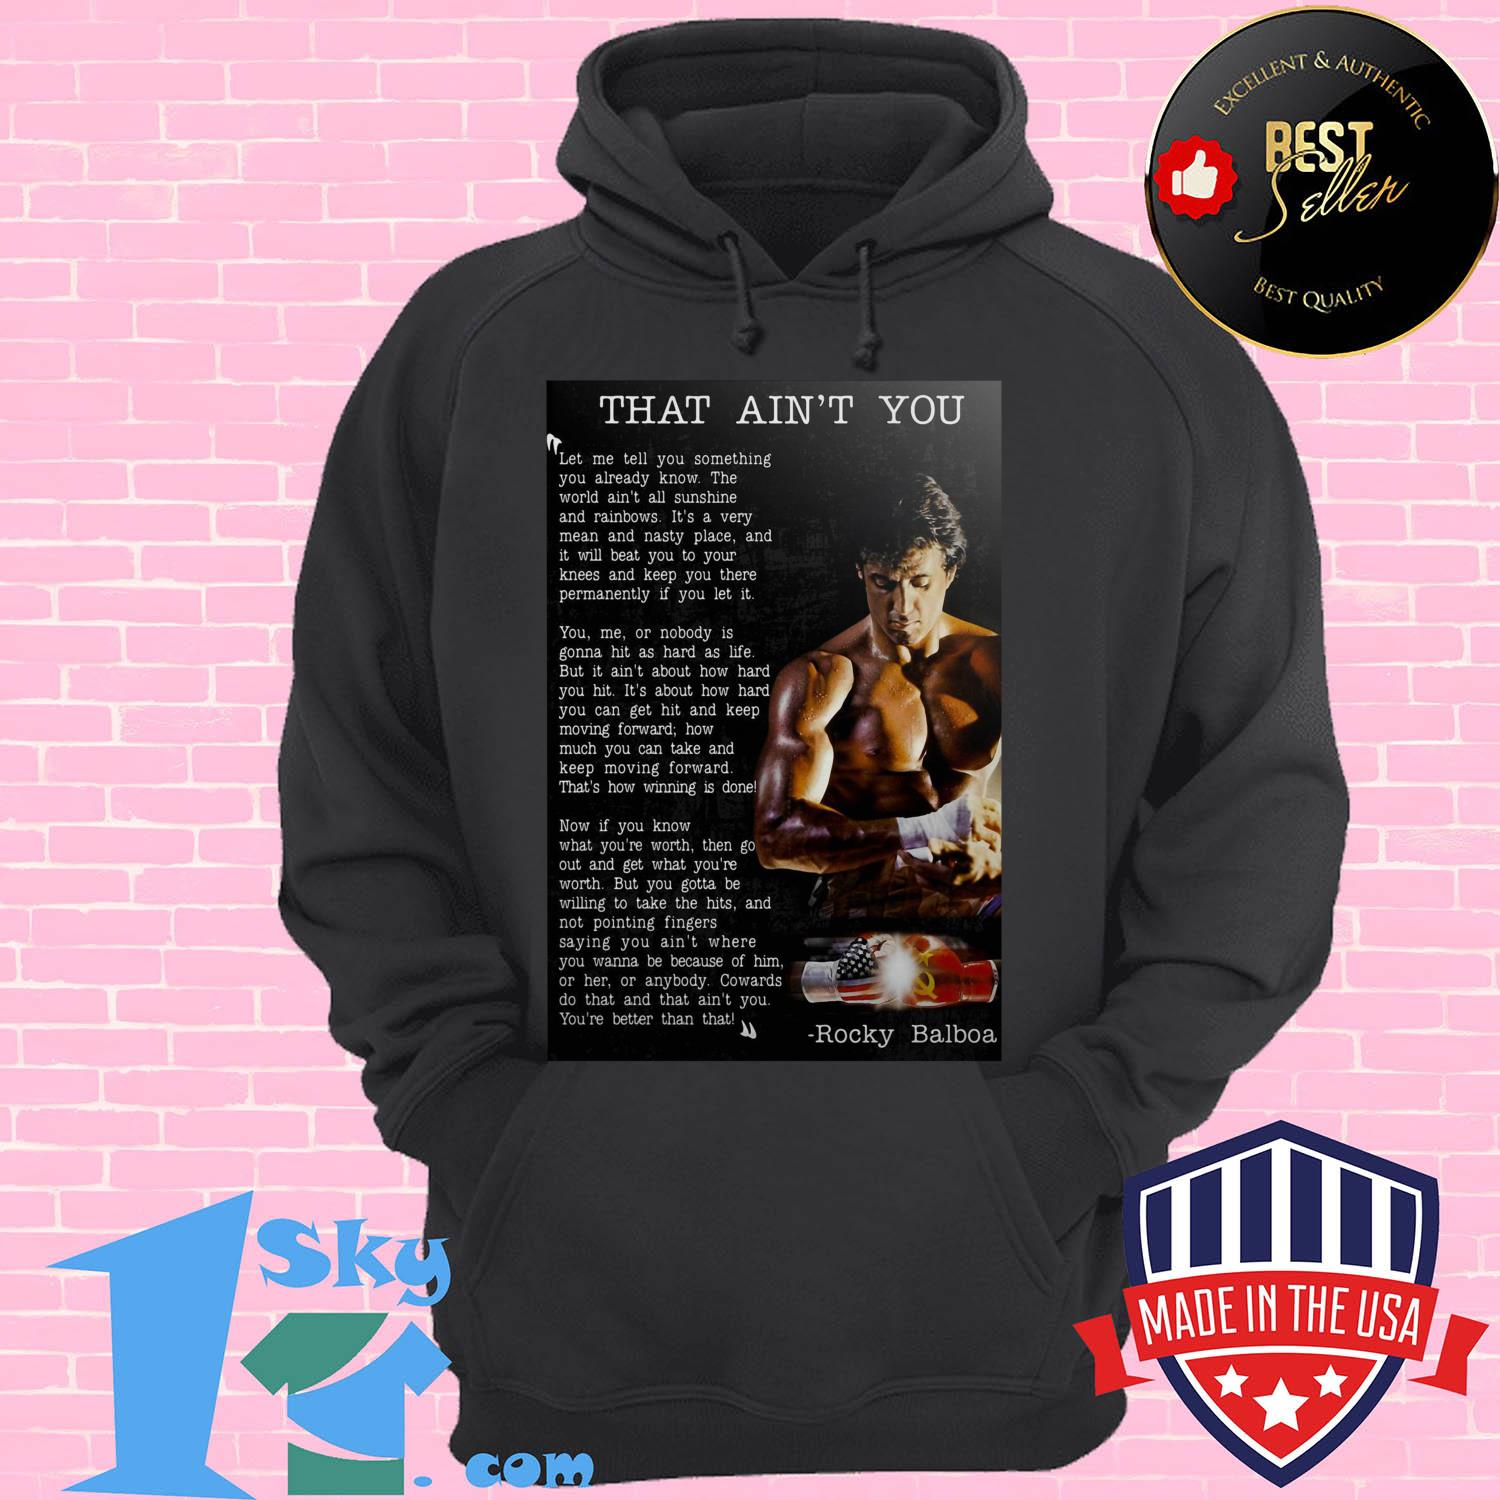 that aint you let me tell you something you already know hoodie - That Ain't You Let Me Tell You Something You Already Know shirt